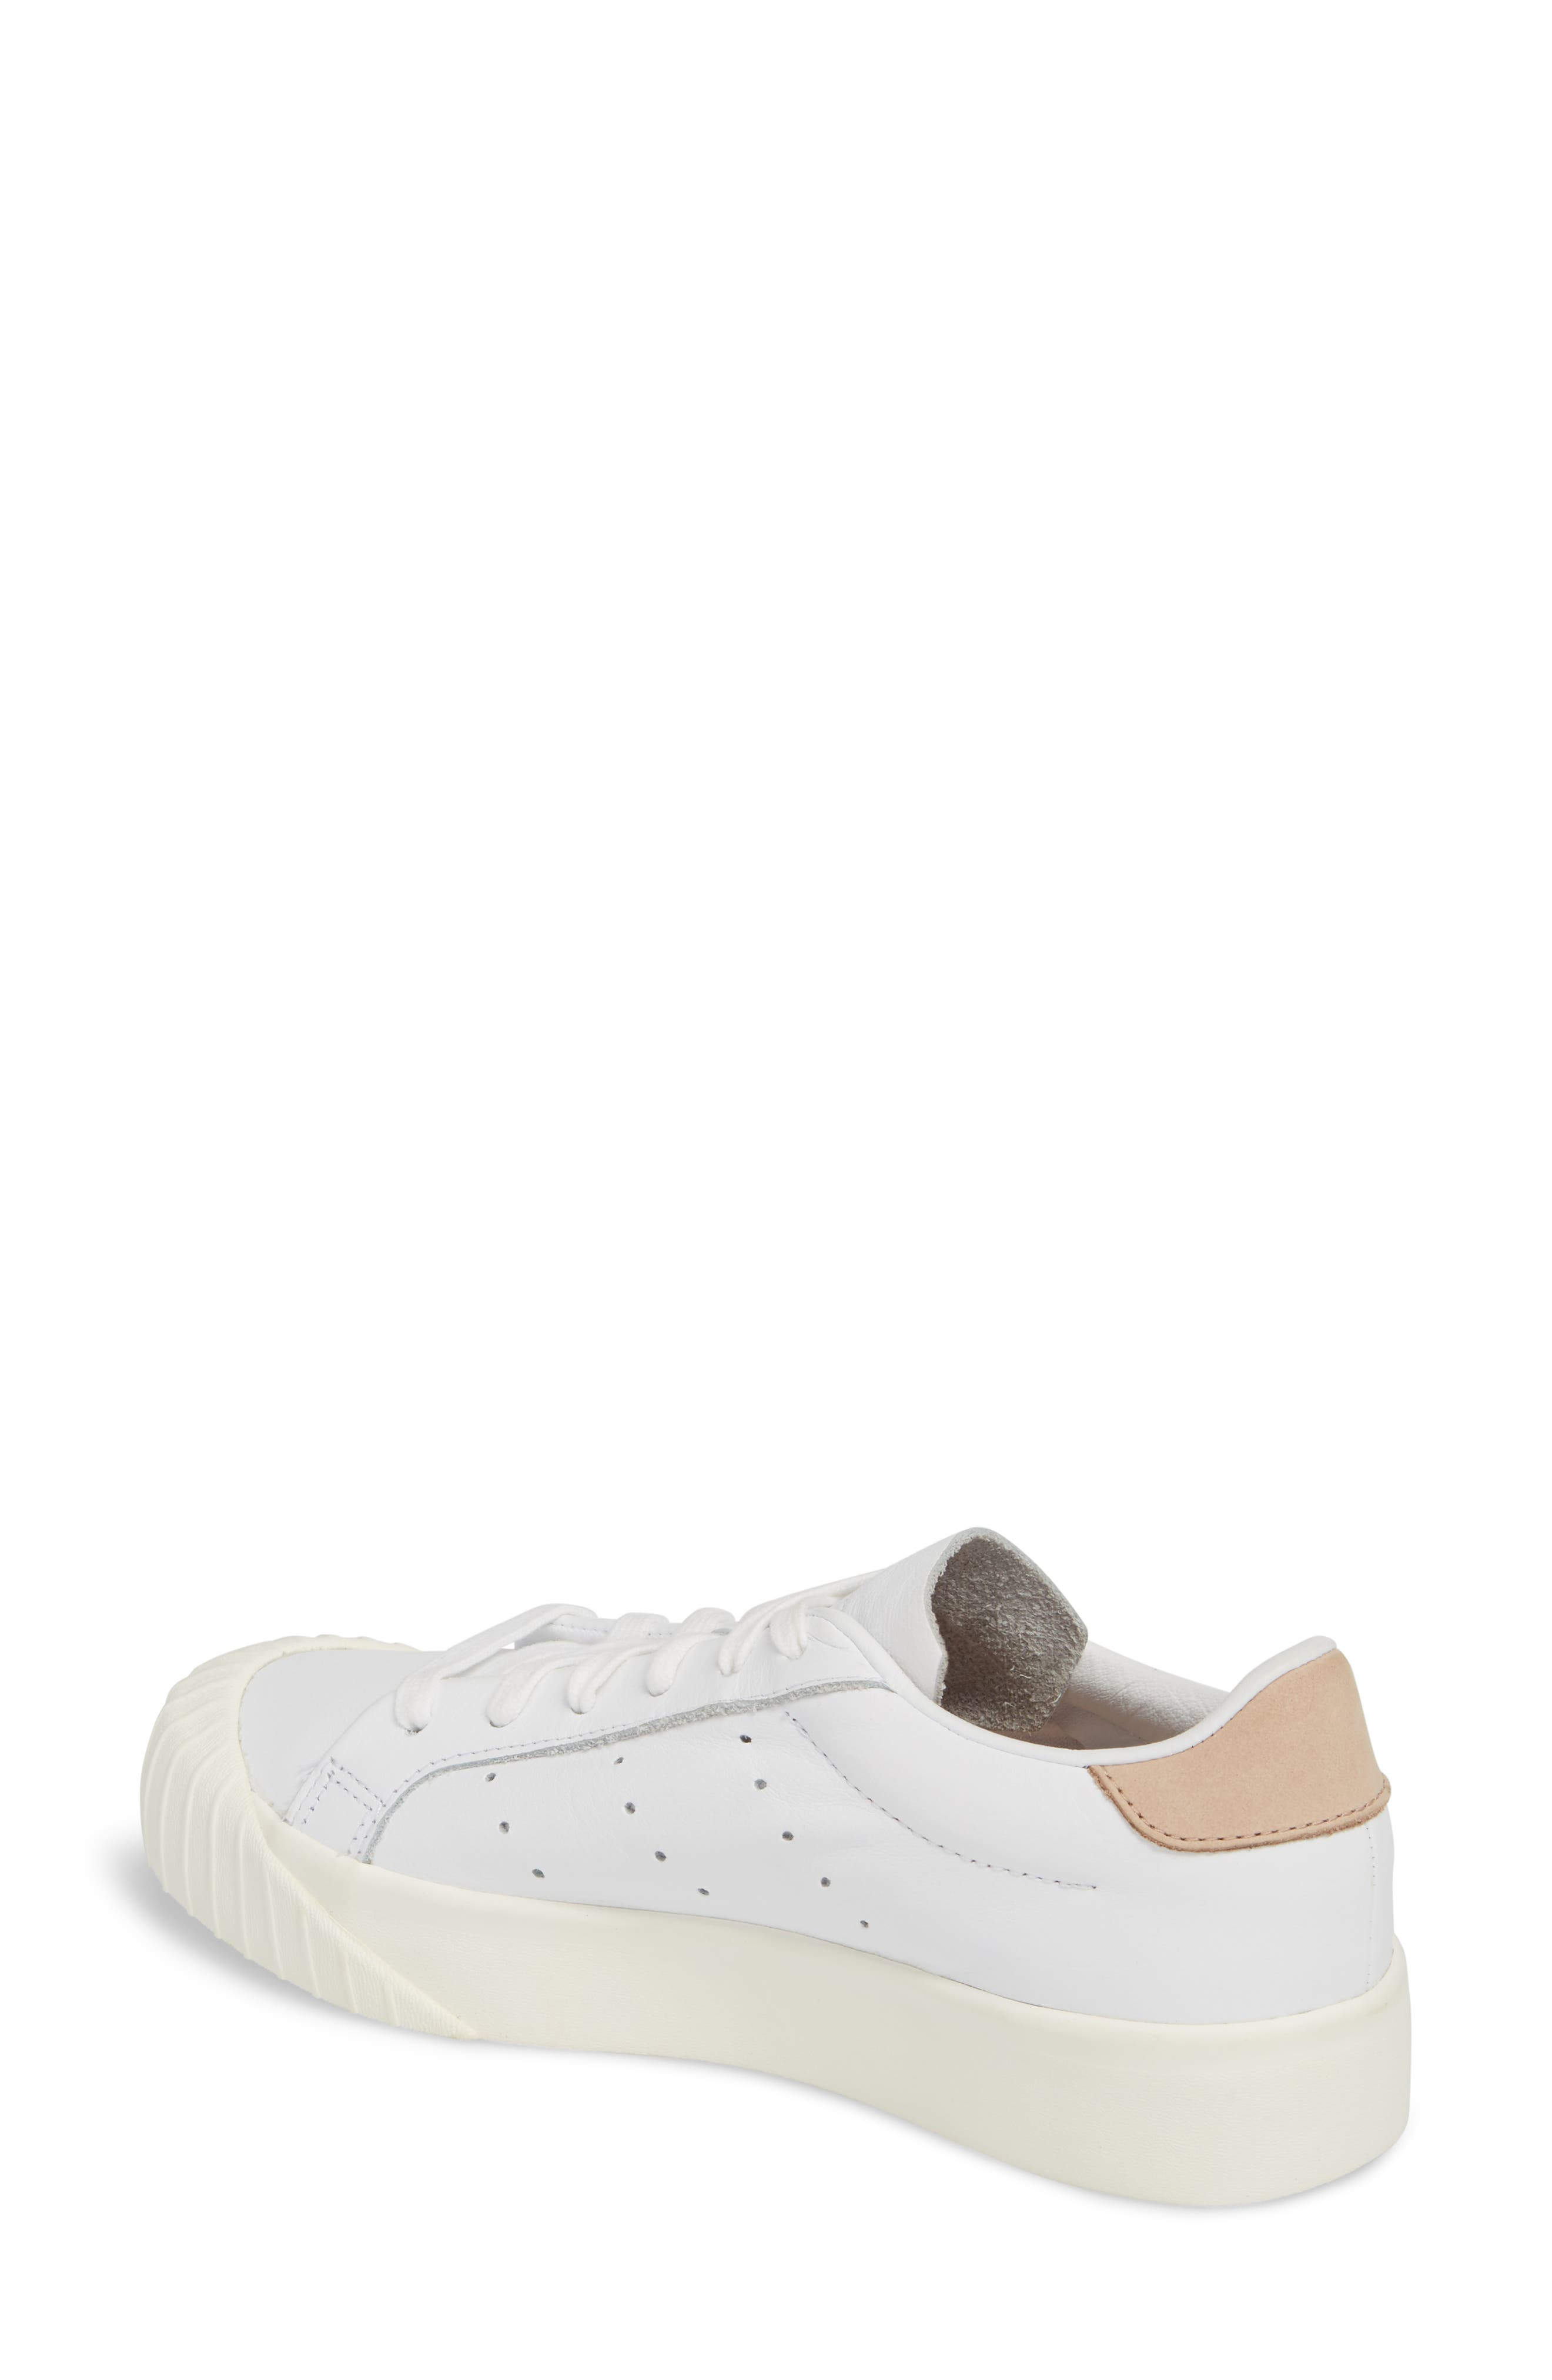 Everyn Perforated Low Top Sneaker,                             Alternate thumbnail 2, color,                             White/ White/ Ash Pearl